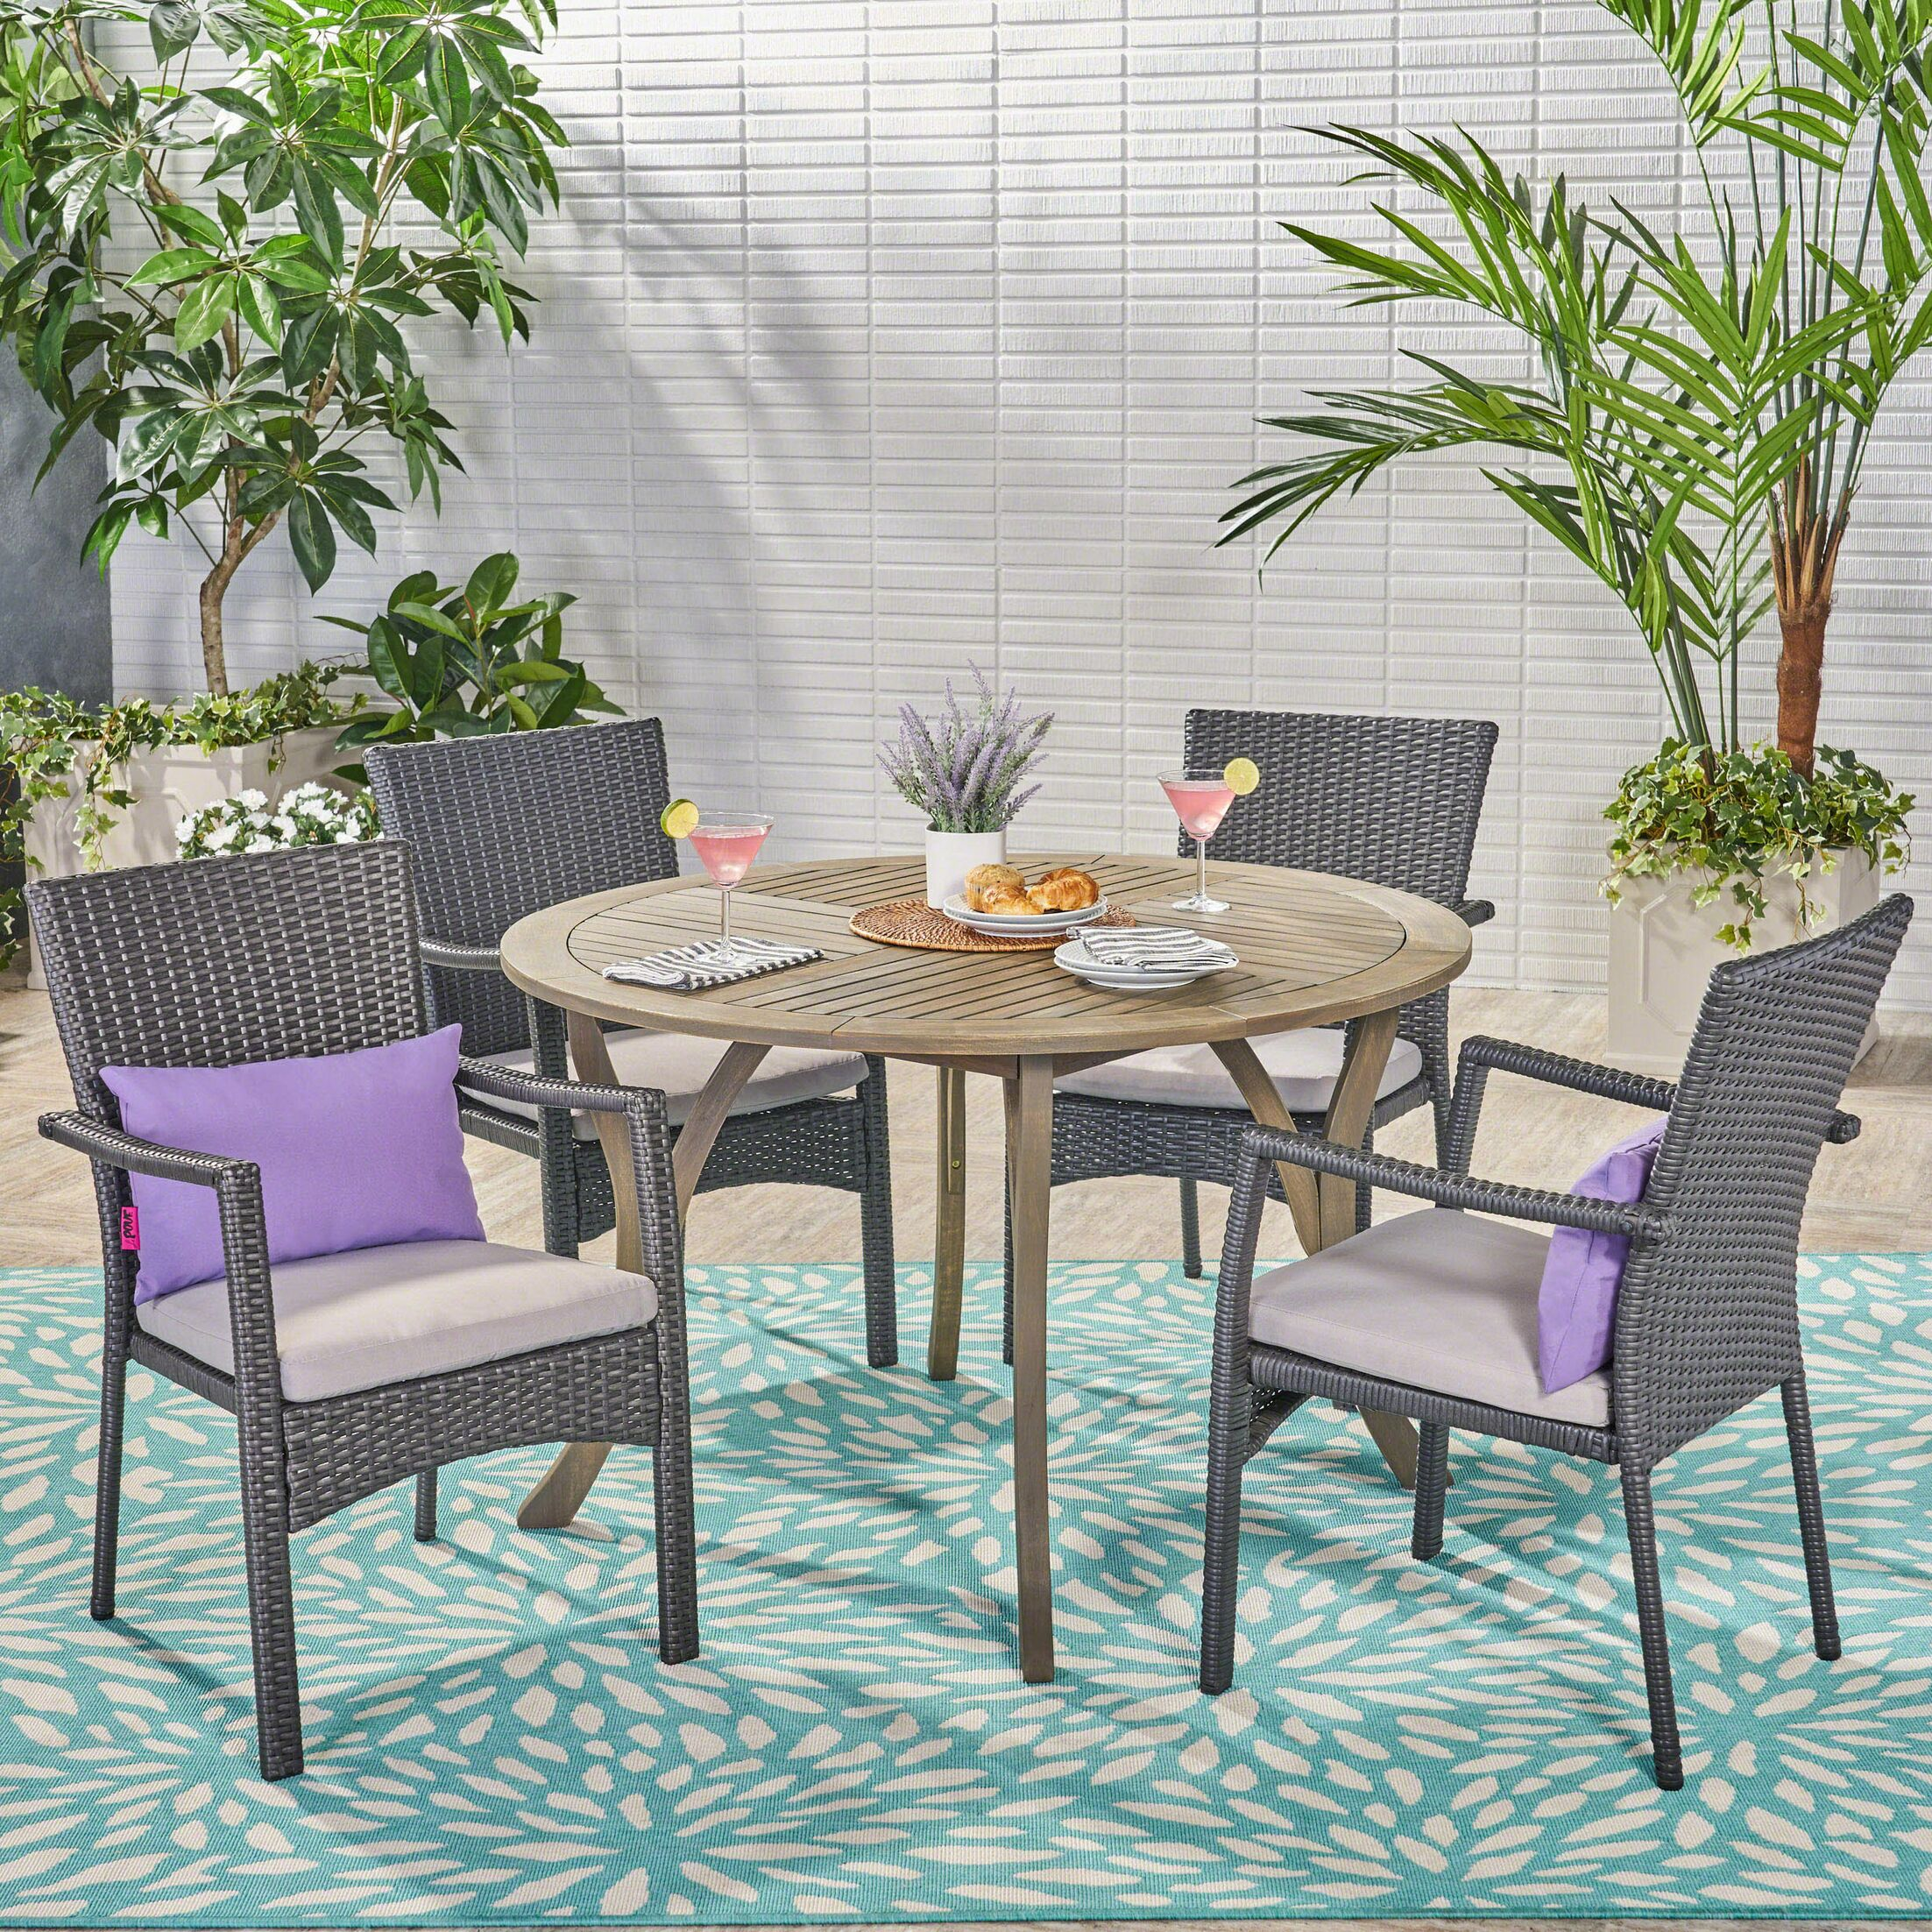 Aarhus 5 Piece Dining Set with Cushions